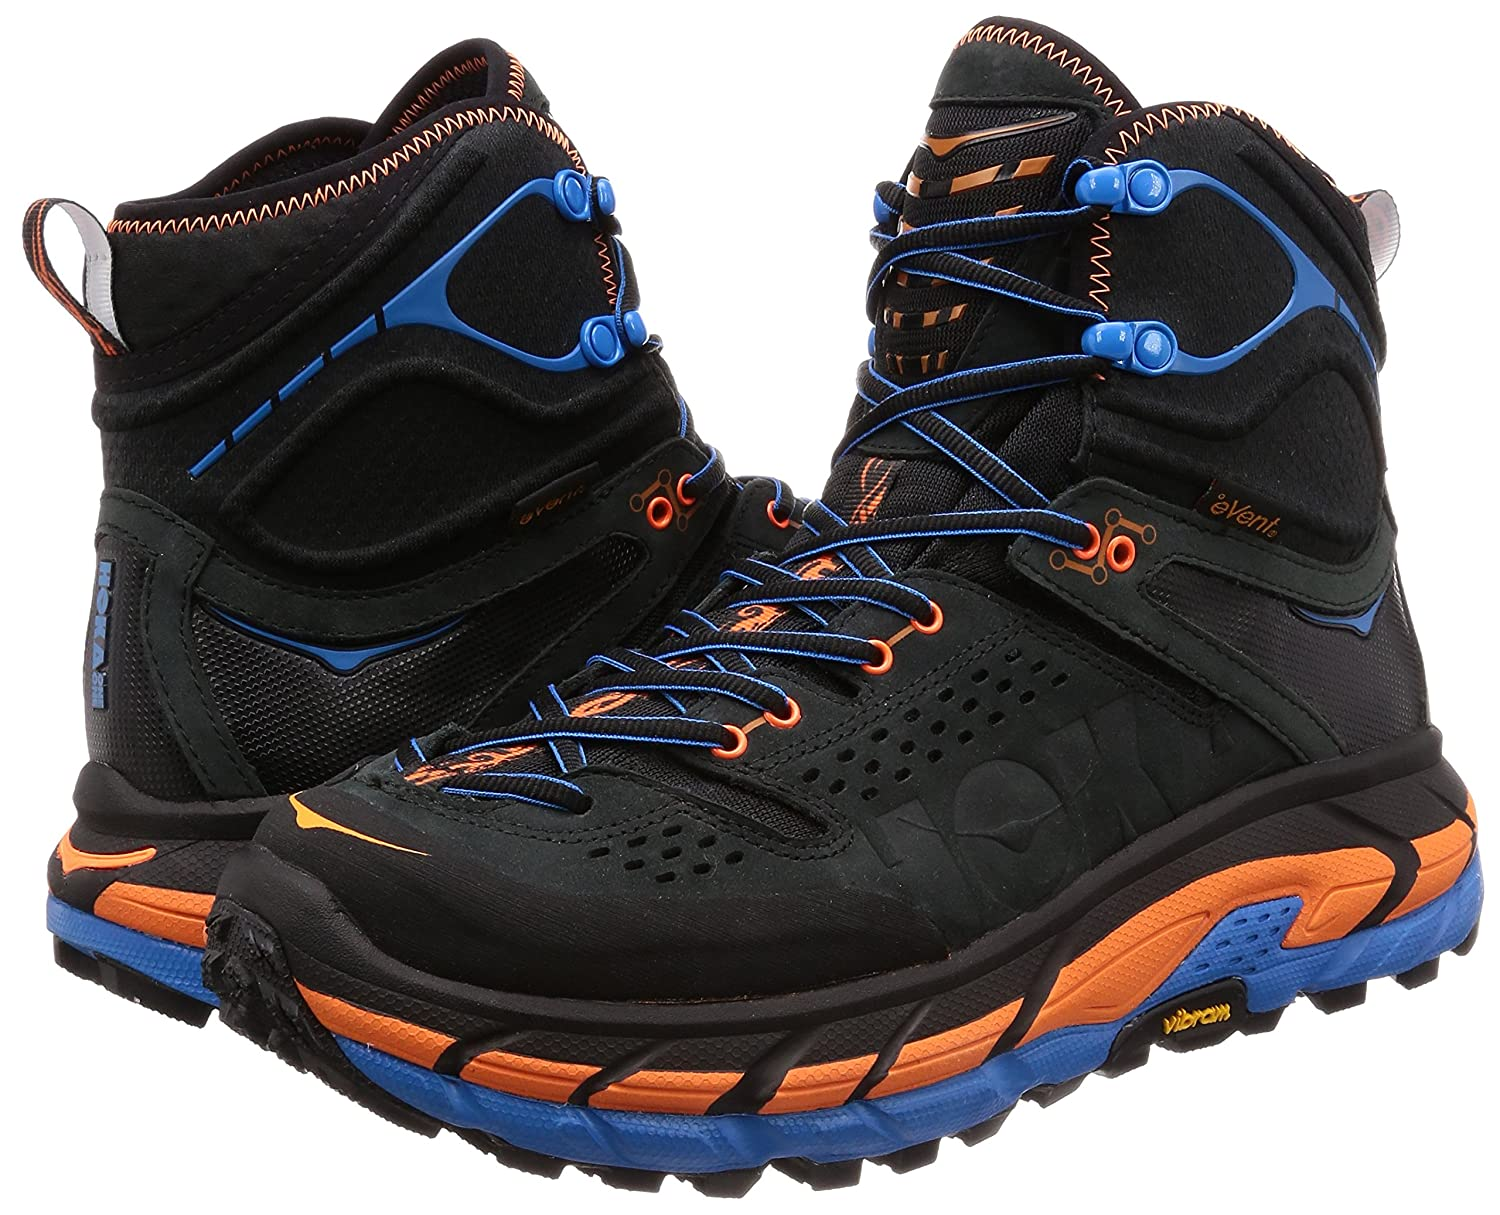 Amazon.com | HOKA ONE ONE Mens Tor Ultra Hi Waterproof Hiking Shoe, Anthracite/Orange, US 9 M | Hiking Shoes